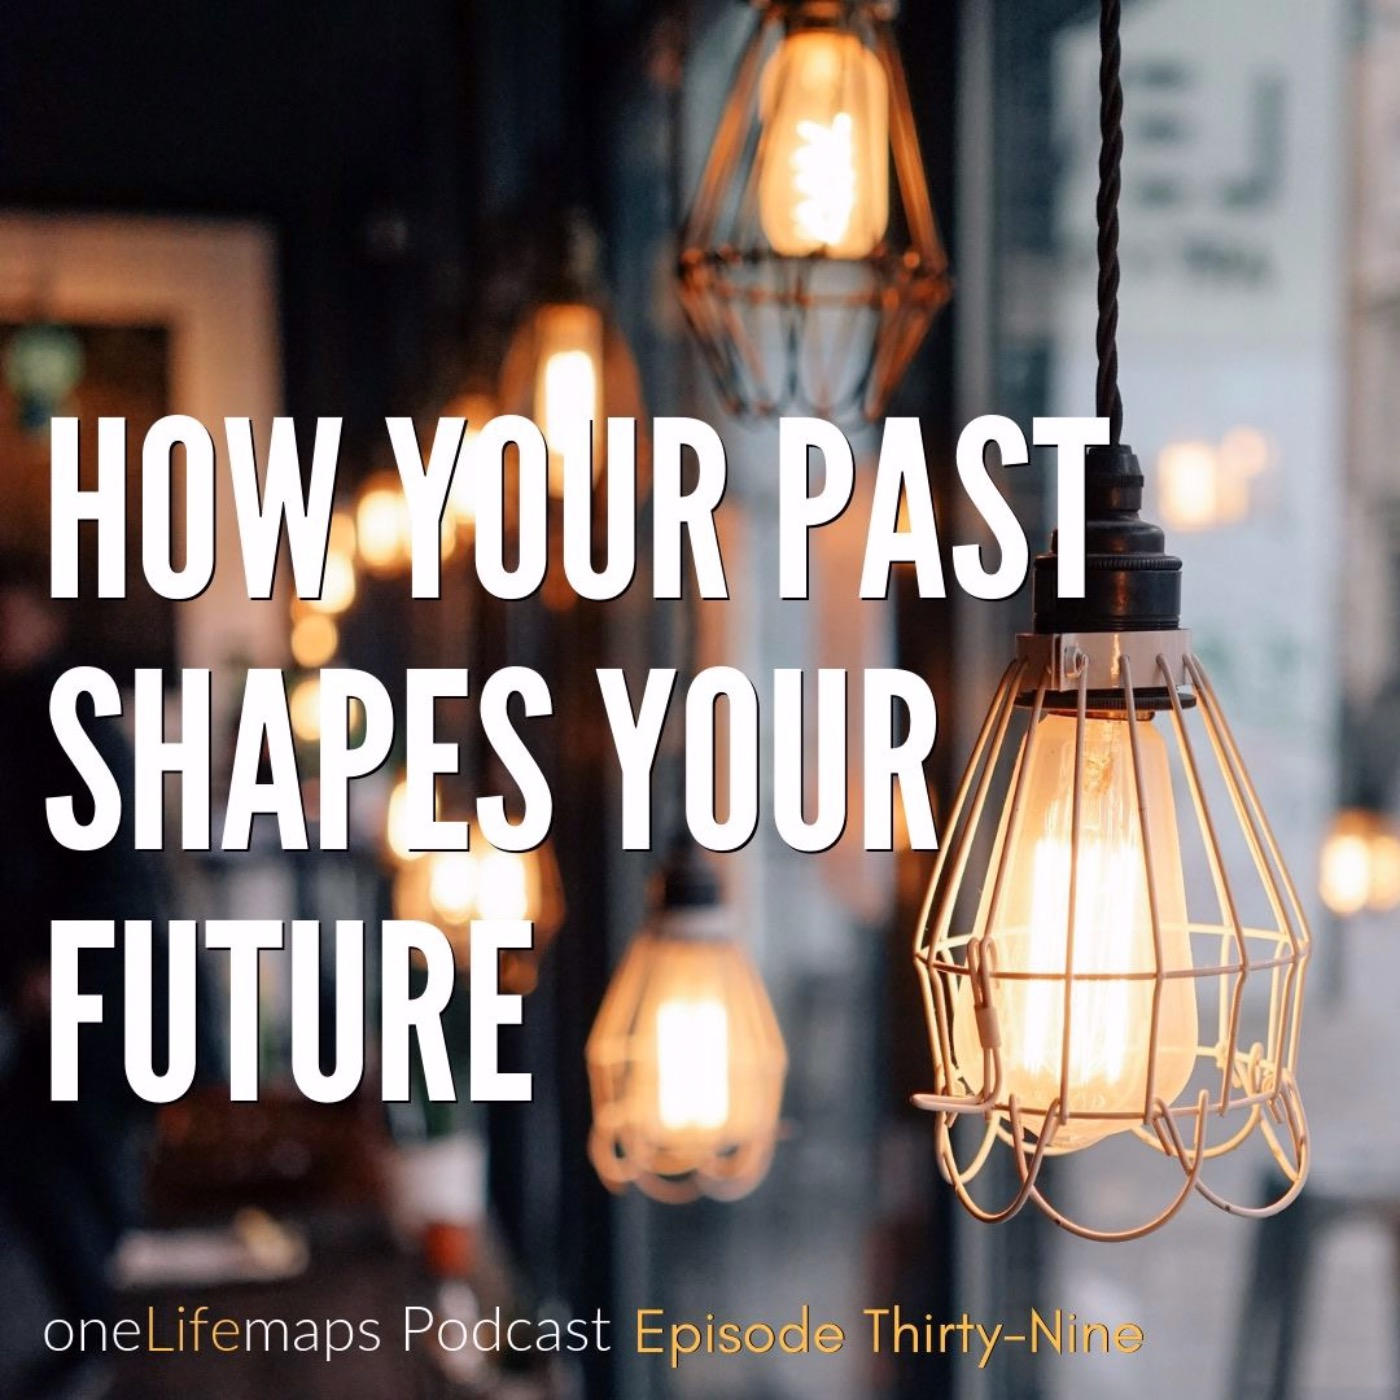 How Your Past Shapes Your Future